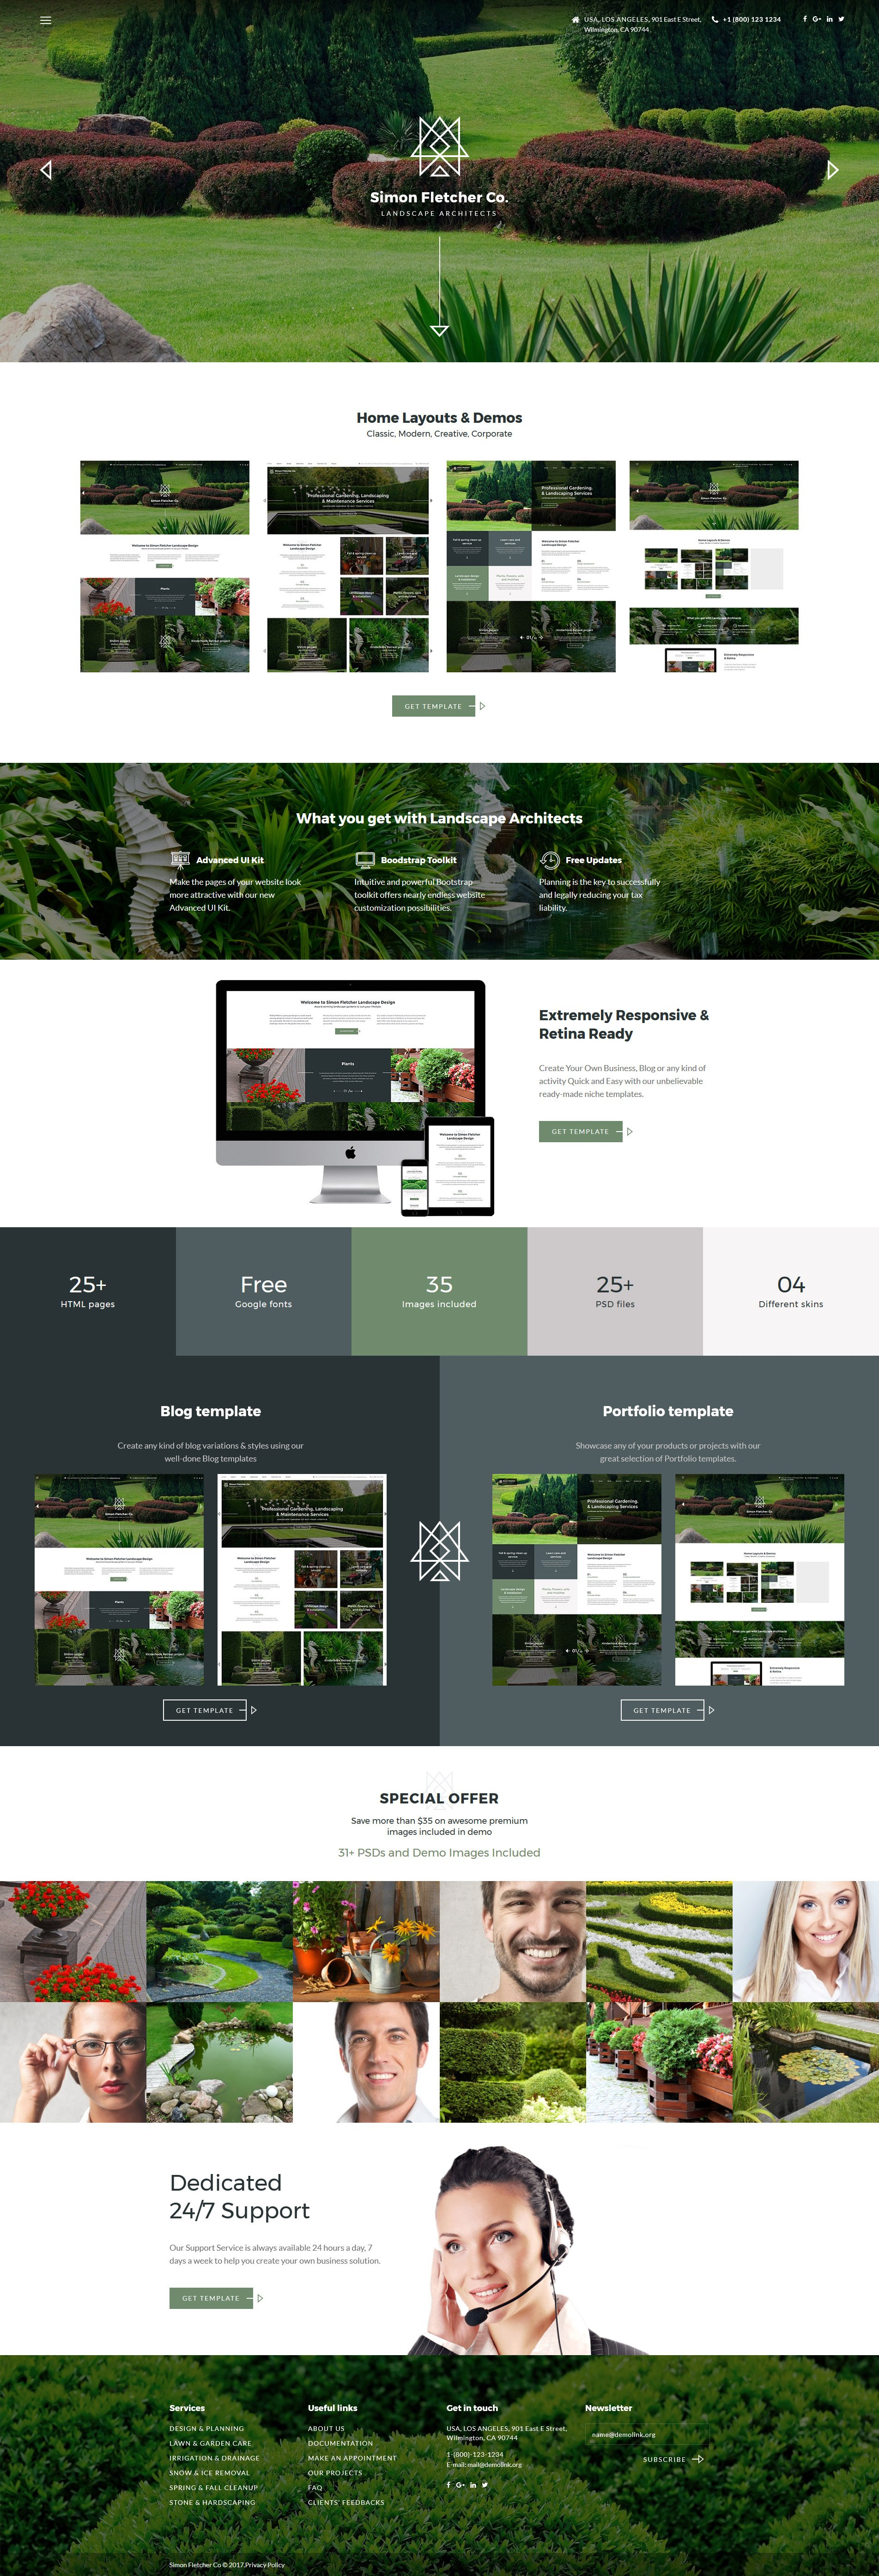 Exterior design website template 62143 for Exterior design website templates